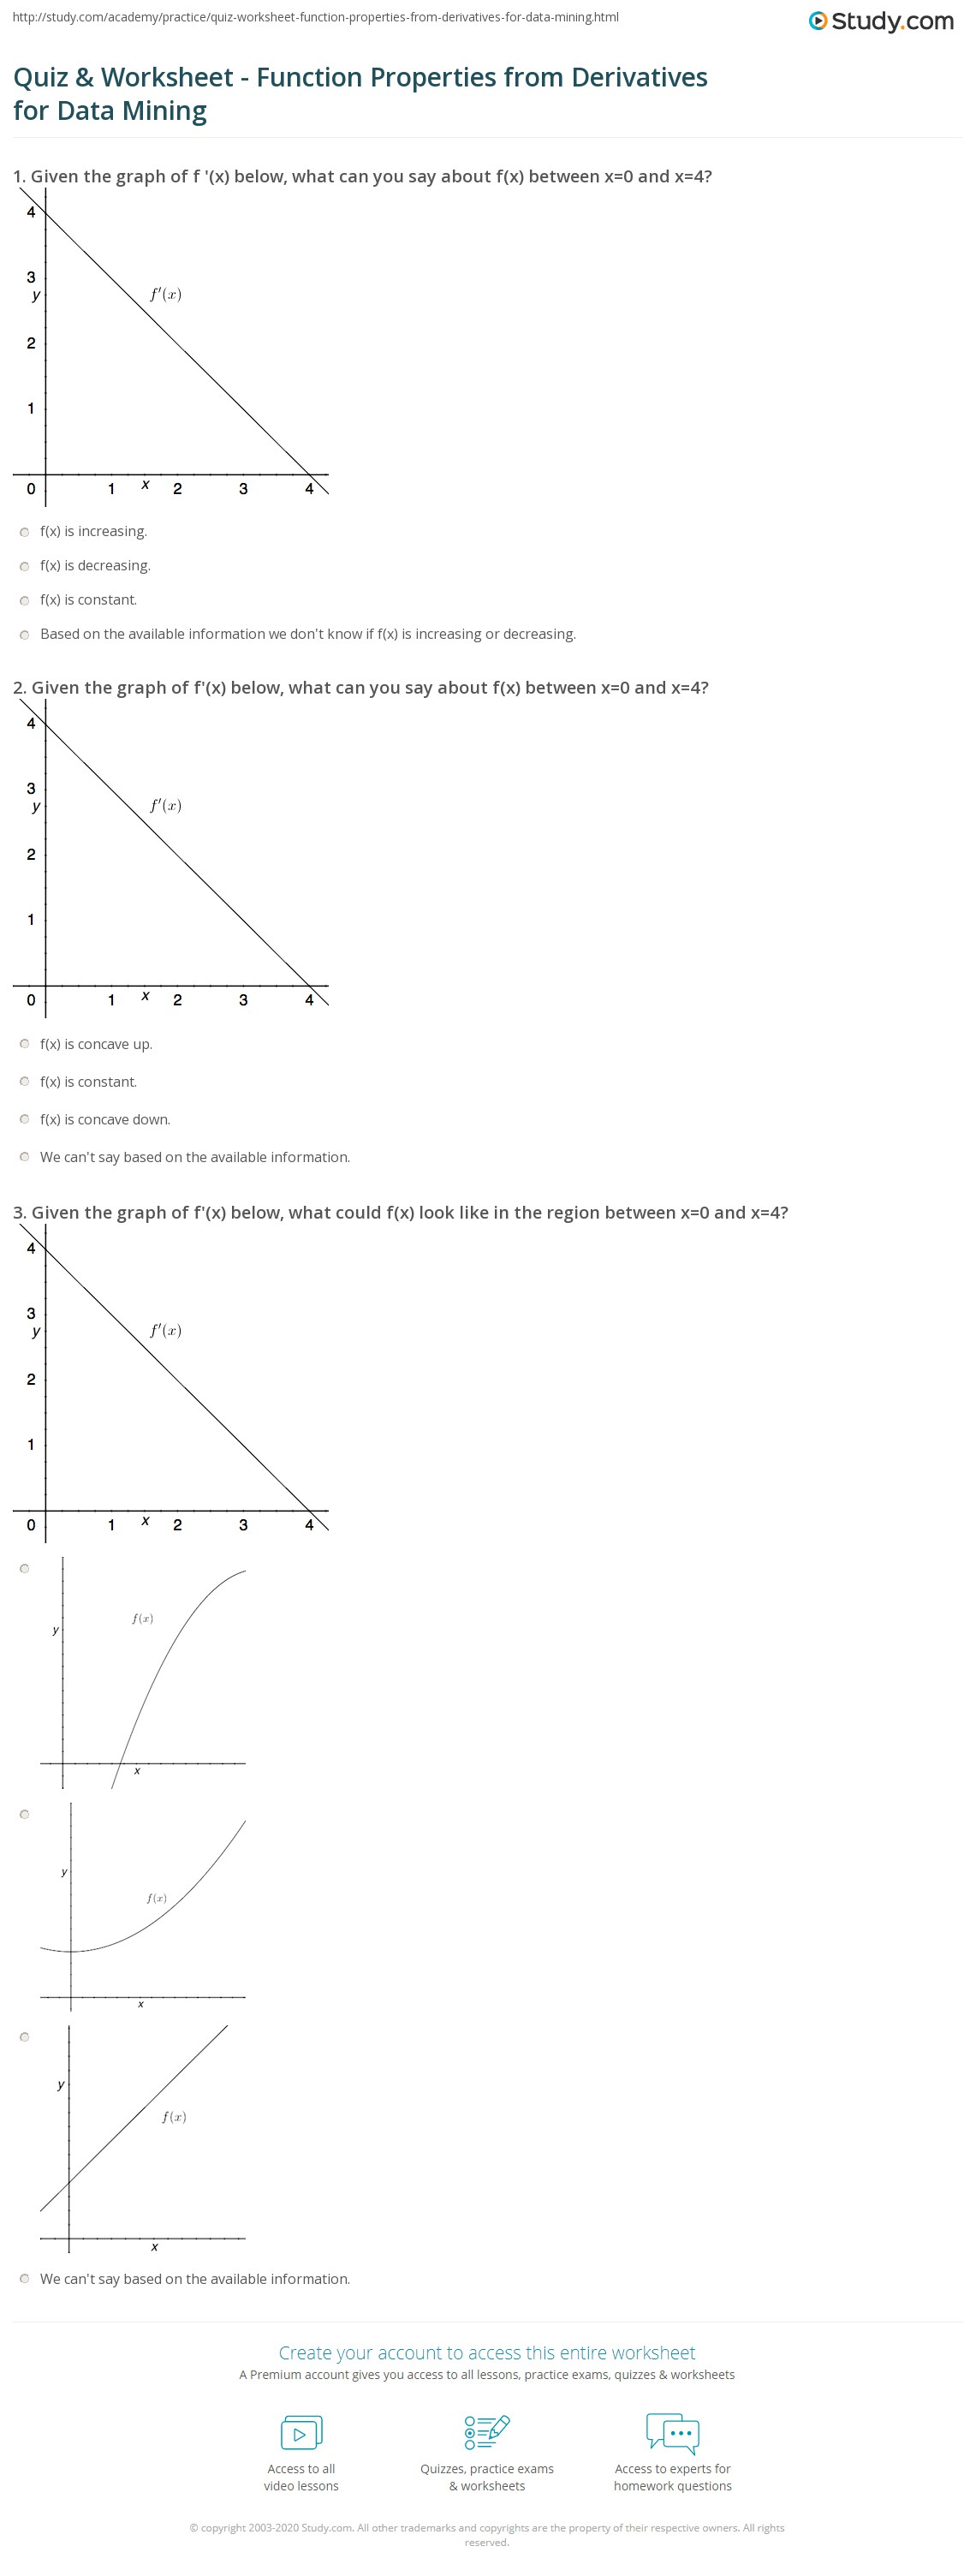 worksheet Worksheet Function quiz worksheet function properties from derivatives for data print mining worksheet